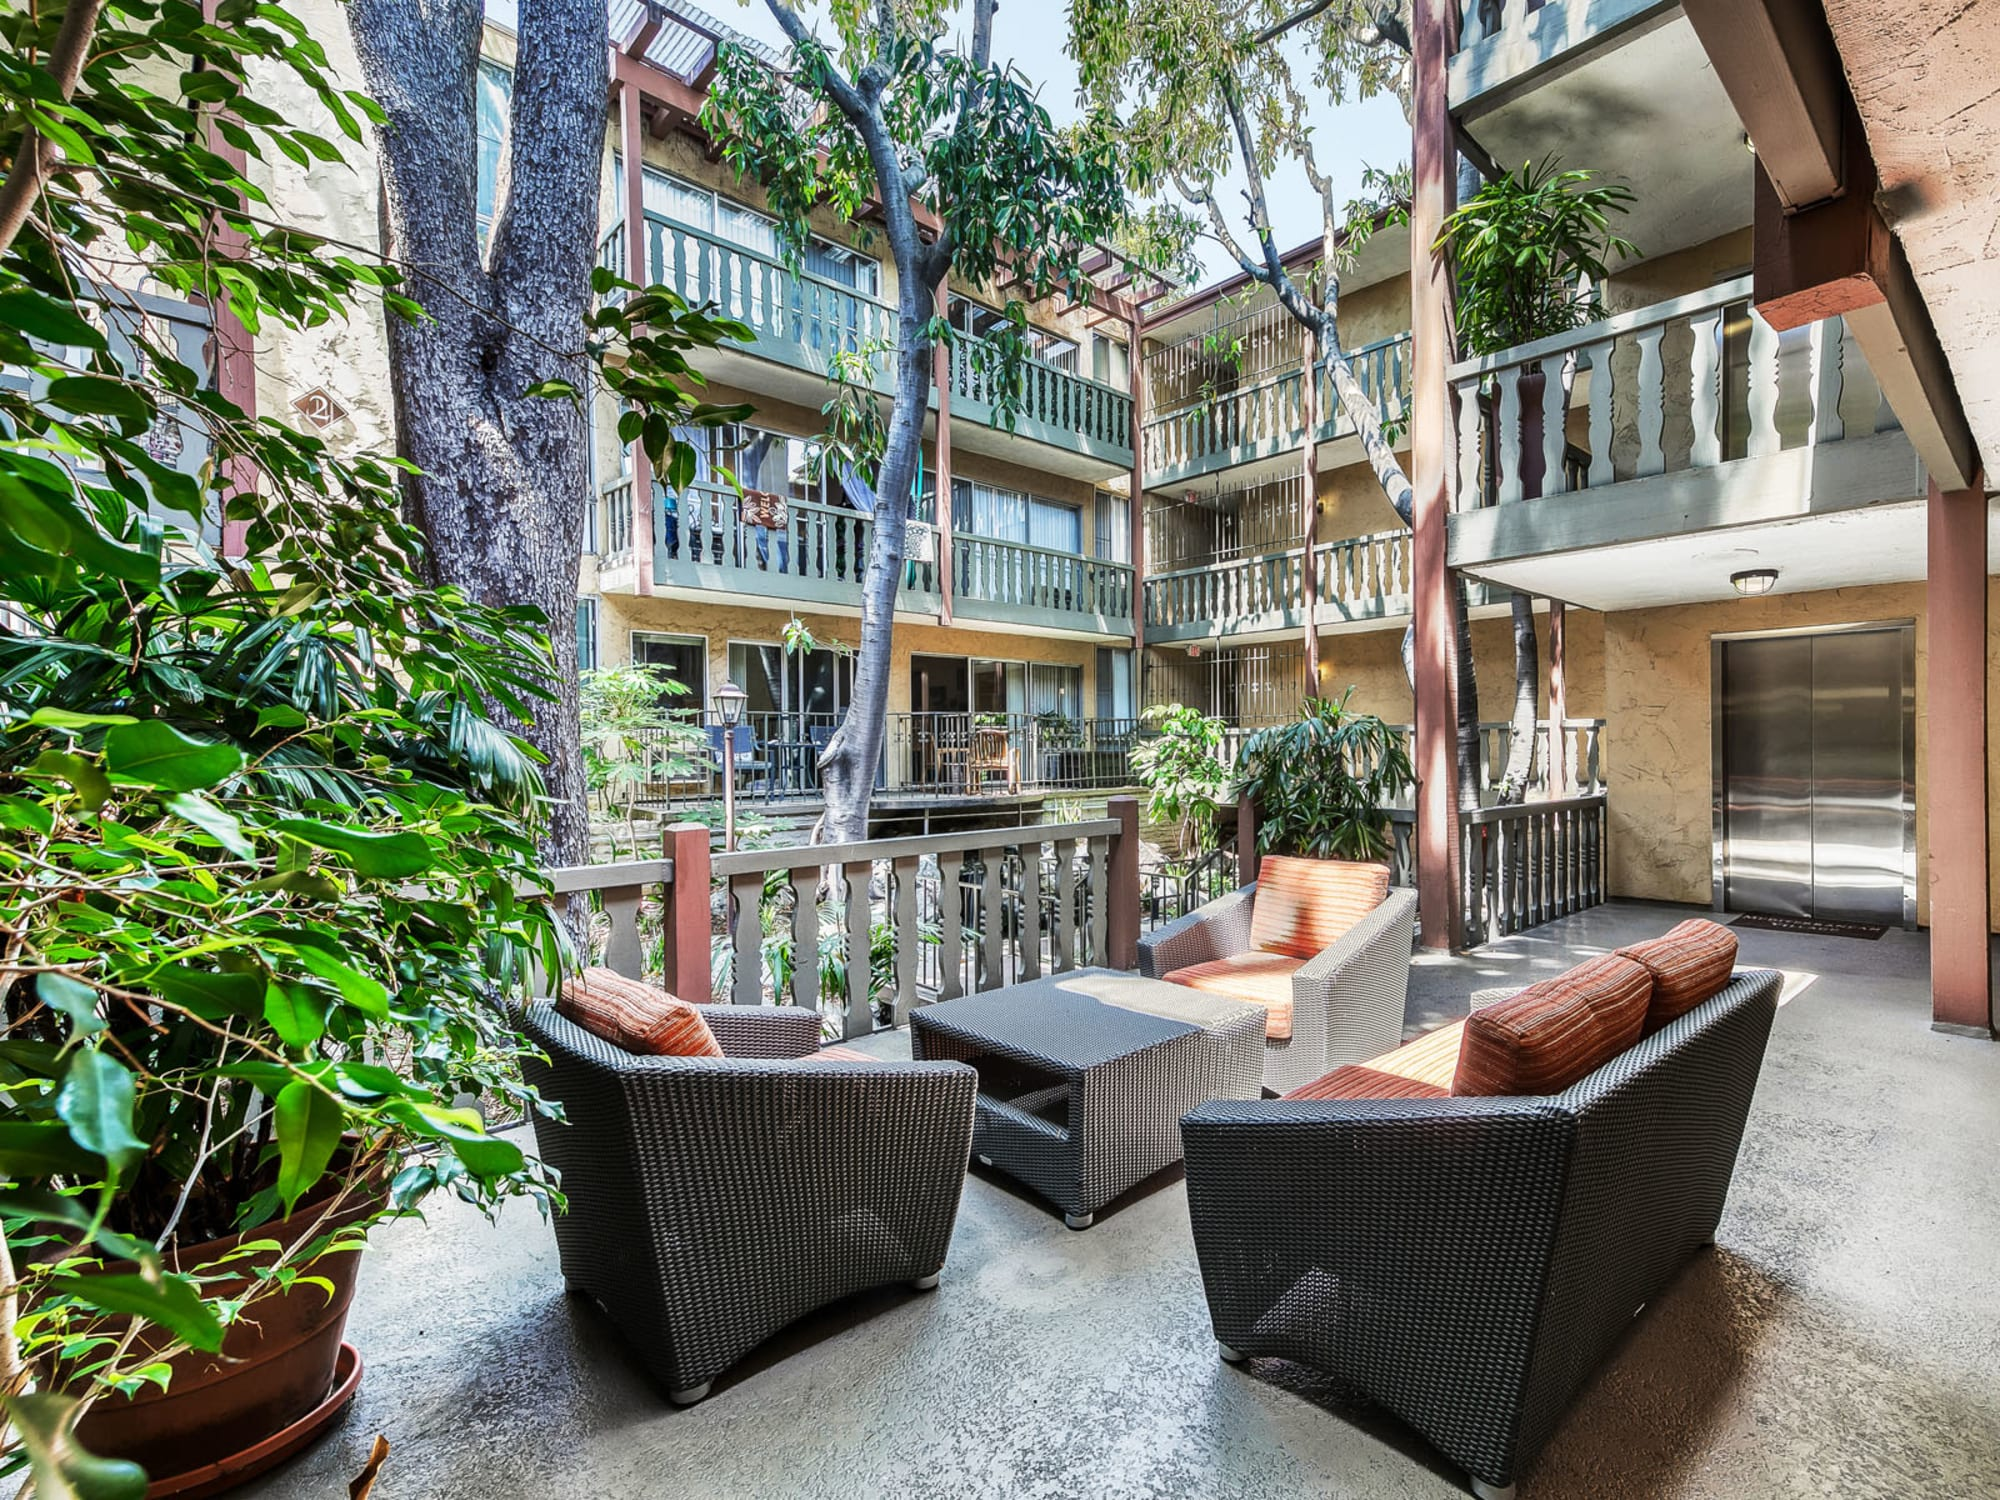 Lounge seating at one of the lush exterior courtyards at Mediterranean Village in West Hollywood, California